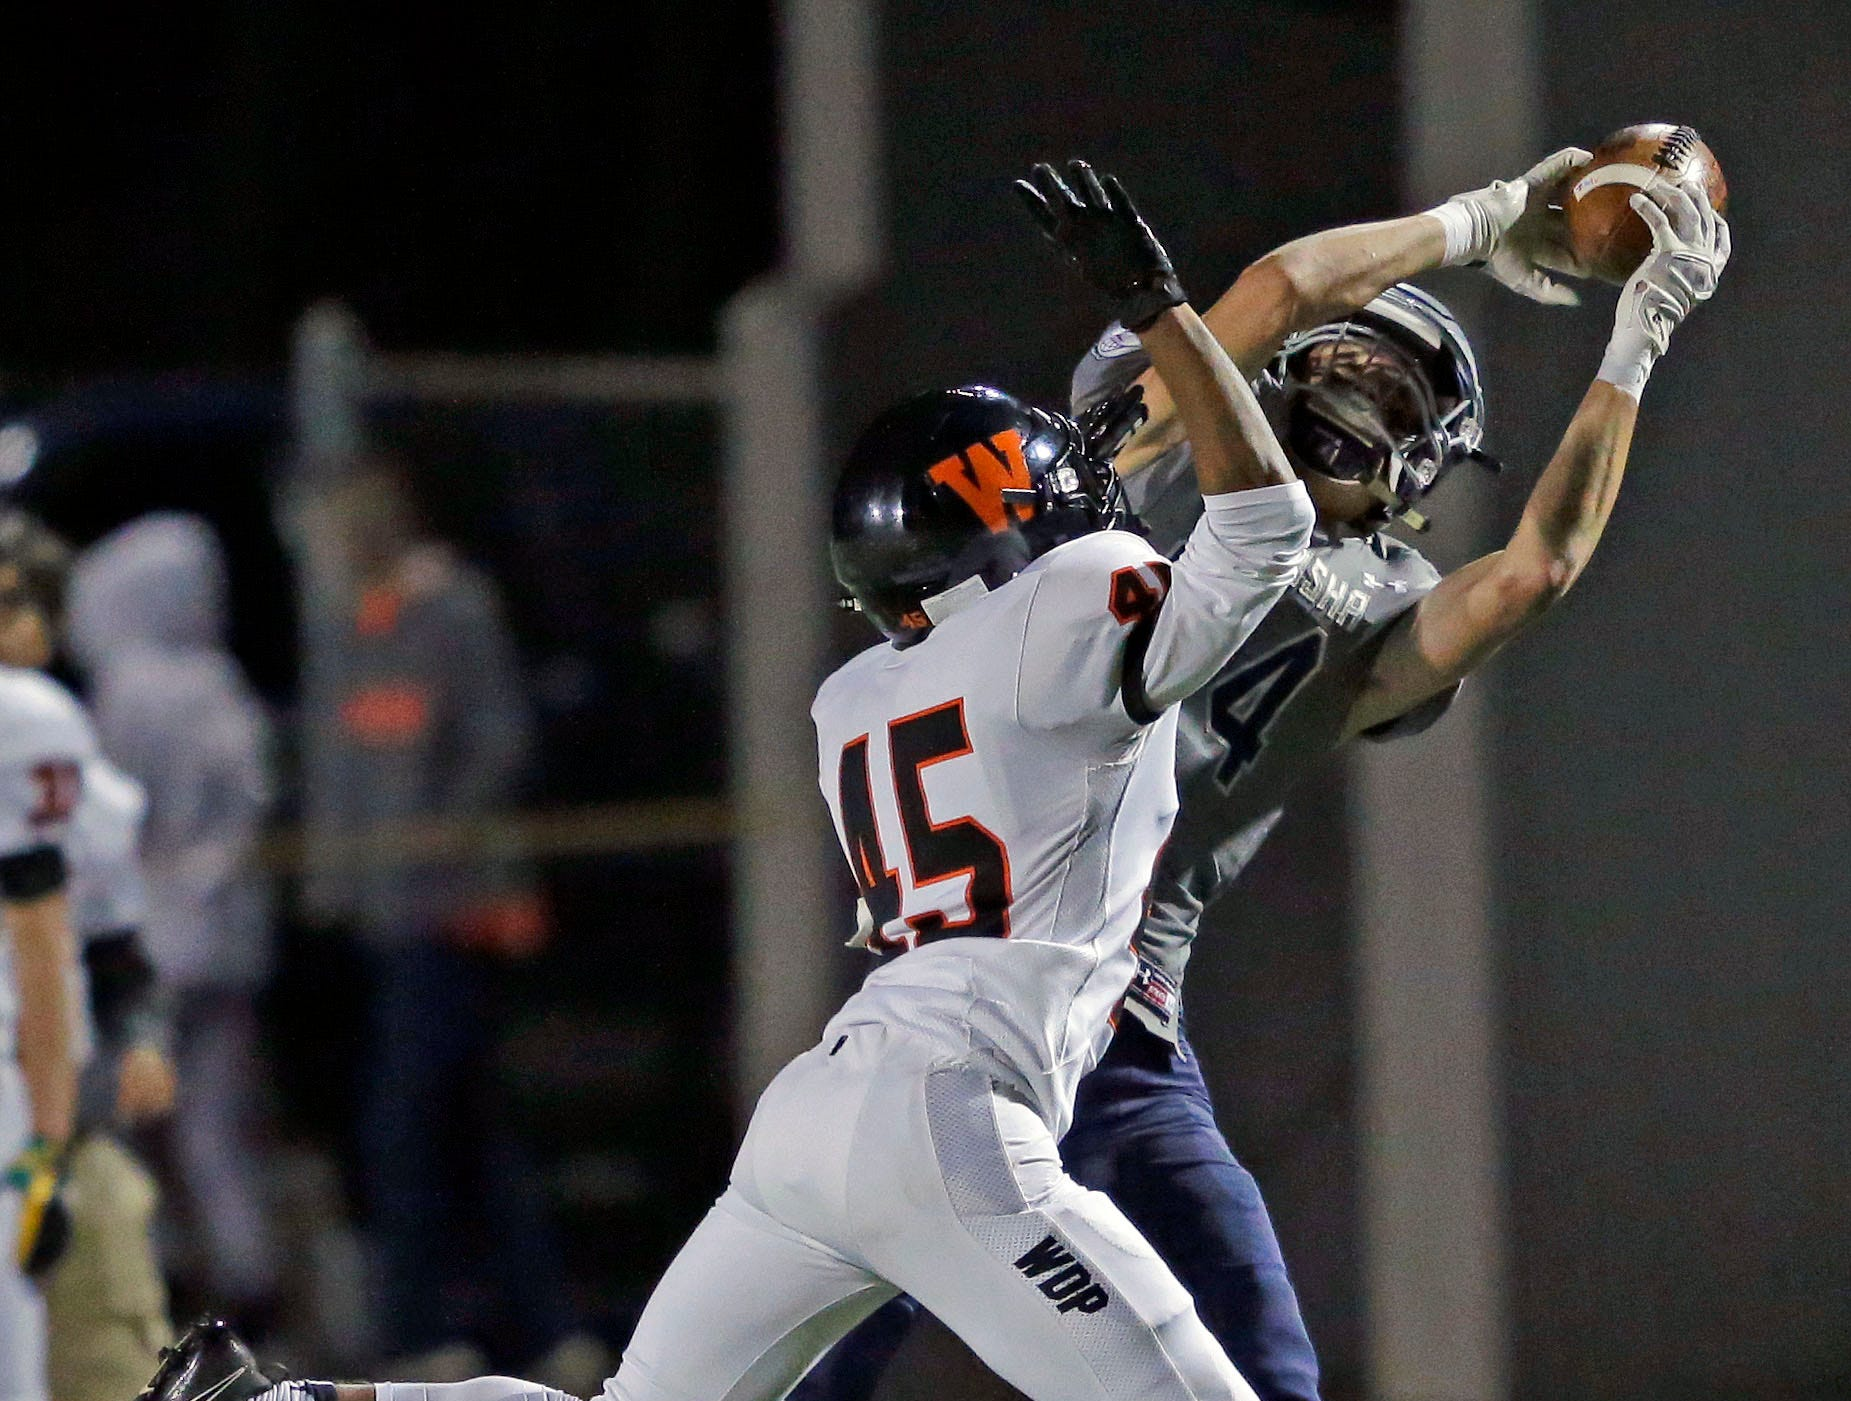 Isiah Burdette of West De Pere plays defense against Ben Romnek of Menasha in a Bay Conference football game Friday, September 28, 2018, at Calder Stadium in Menasha, Wis.Ron Page/USA TODAY NETWORK-Wisconsin